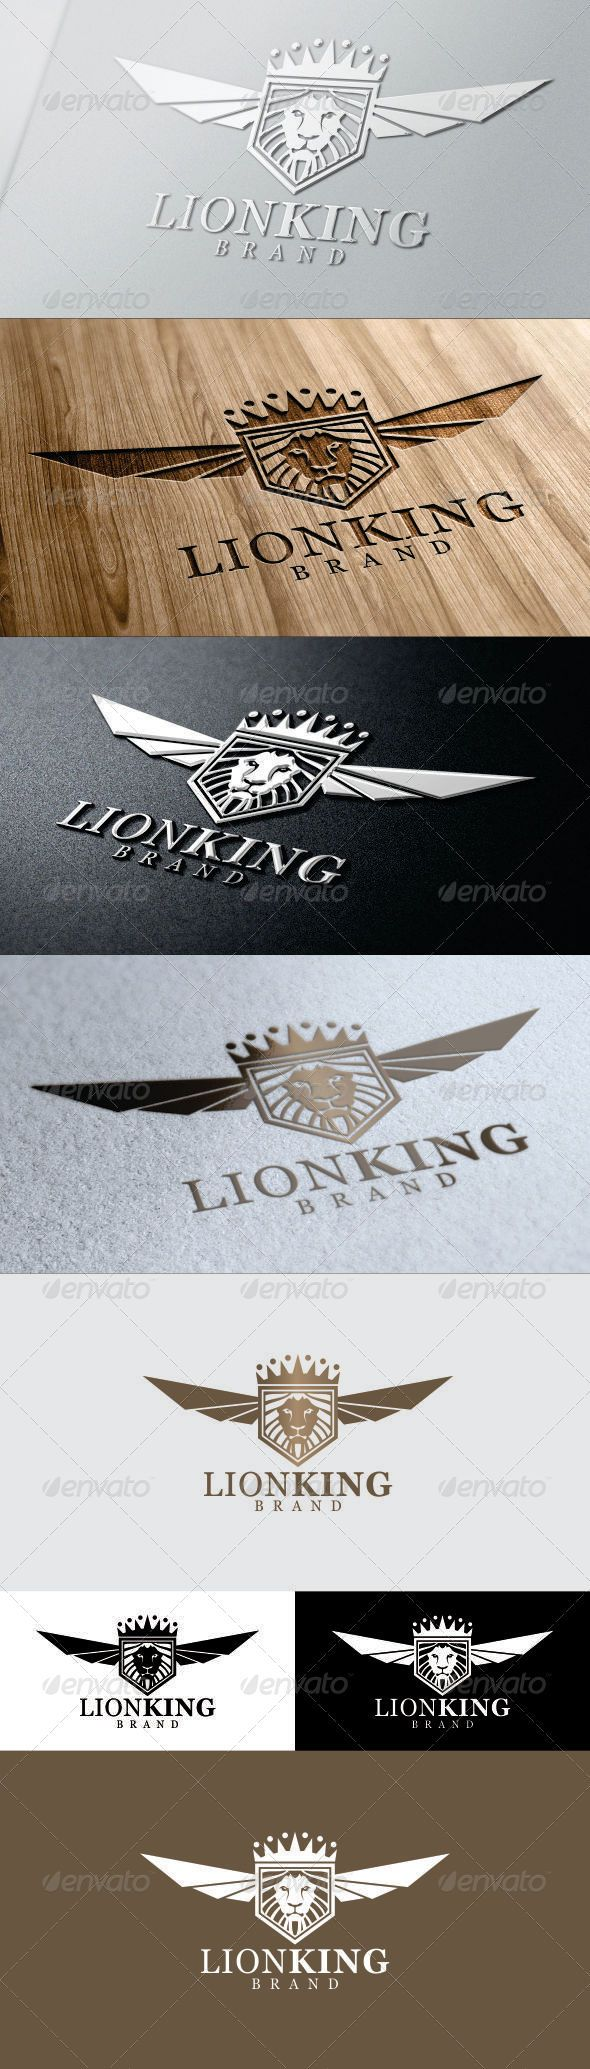 Lion King (Wings & Crown) Logo #GraphicRiver 100% Editable files in these file formats (EPS, AI, CDR) font used: Vani 2 Variations Included in Downloads: Normal, Reverse! if you need help please contact me any time. Please Rate This Item if you like… Created: 11 December 13 Graphics Files Included: Vector EPS #AI Illustrator #CorelDRAW CDR Layered: Yes Minimum Adobe CS Version: CS Resolution: Resizable Tags Animal Logo